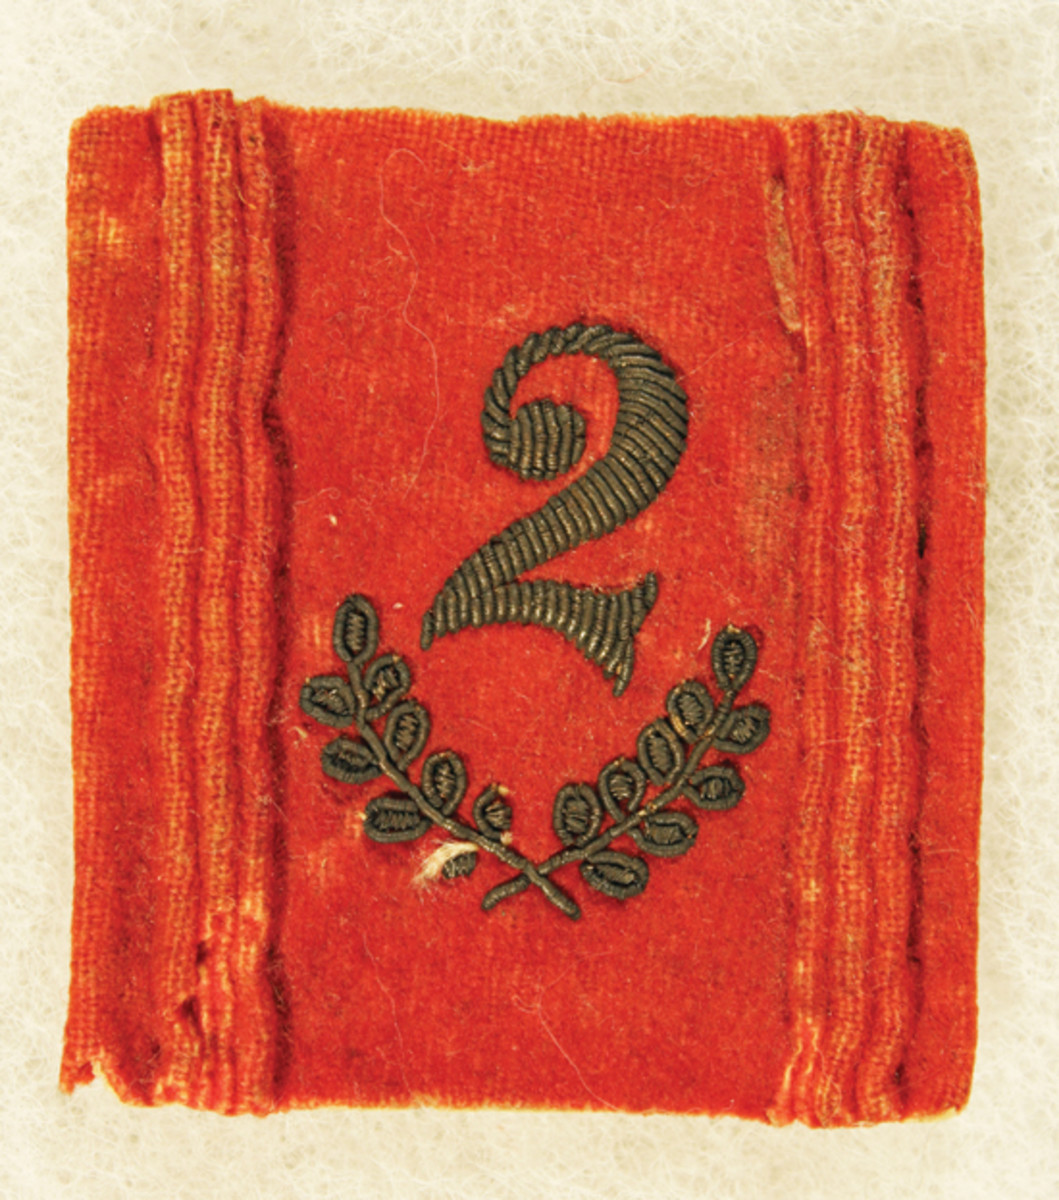 An example of the pre-1871 red square wool cockade with gold bullion embroidered battalion number.